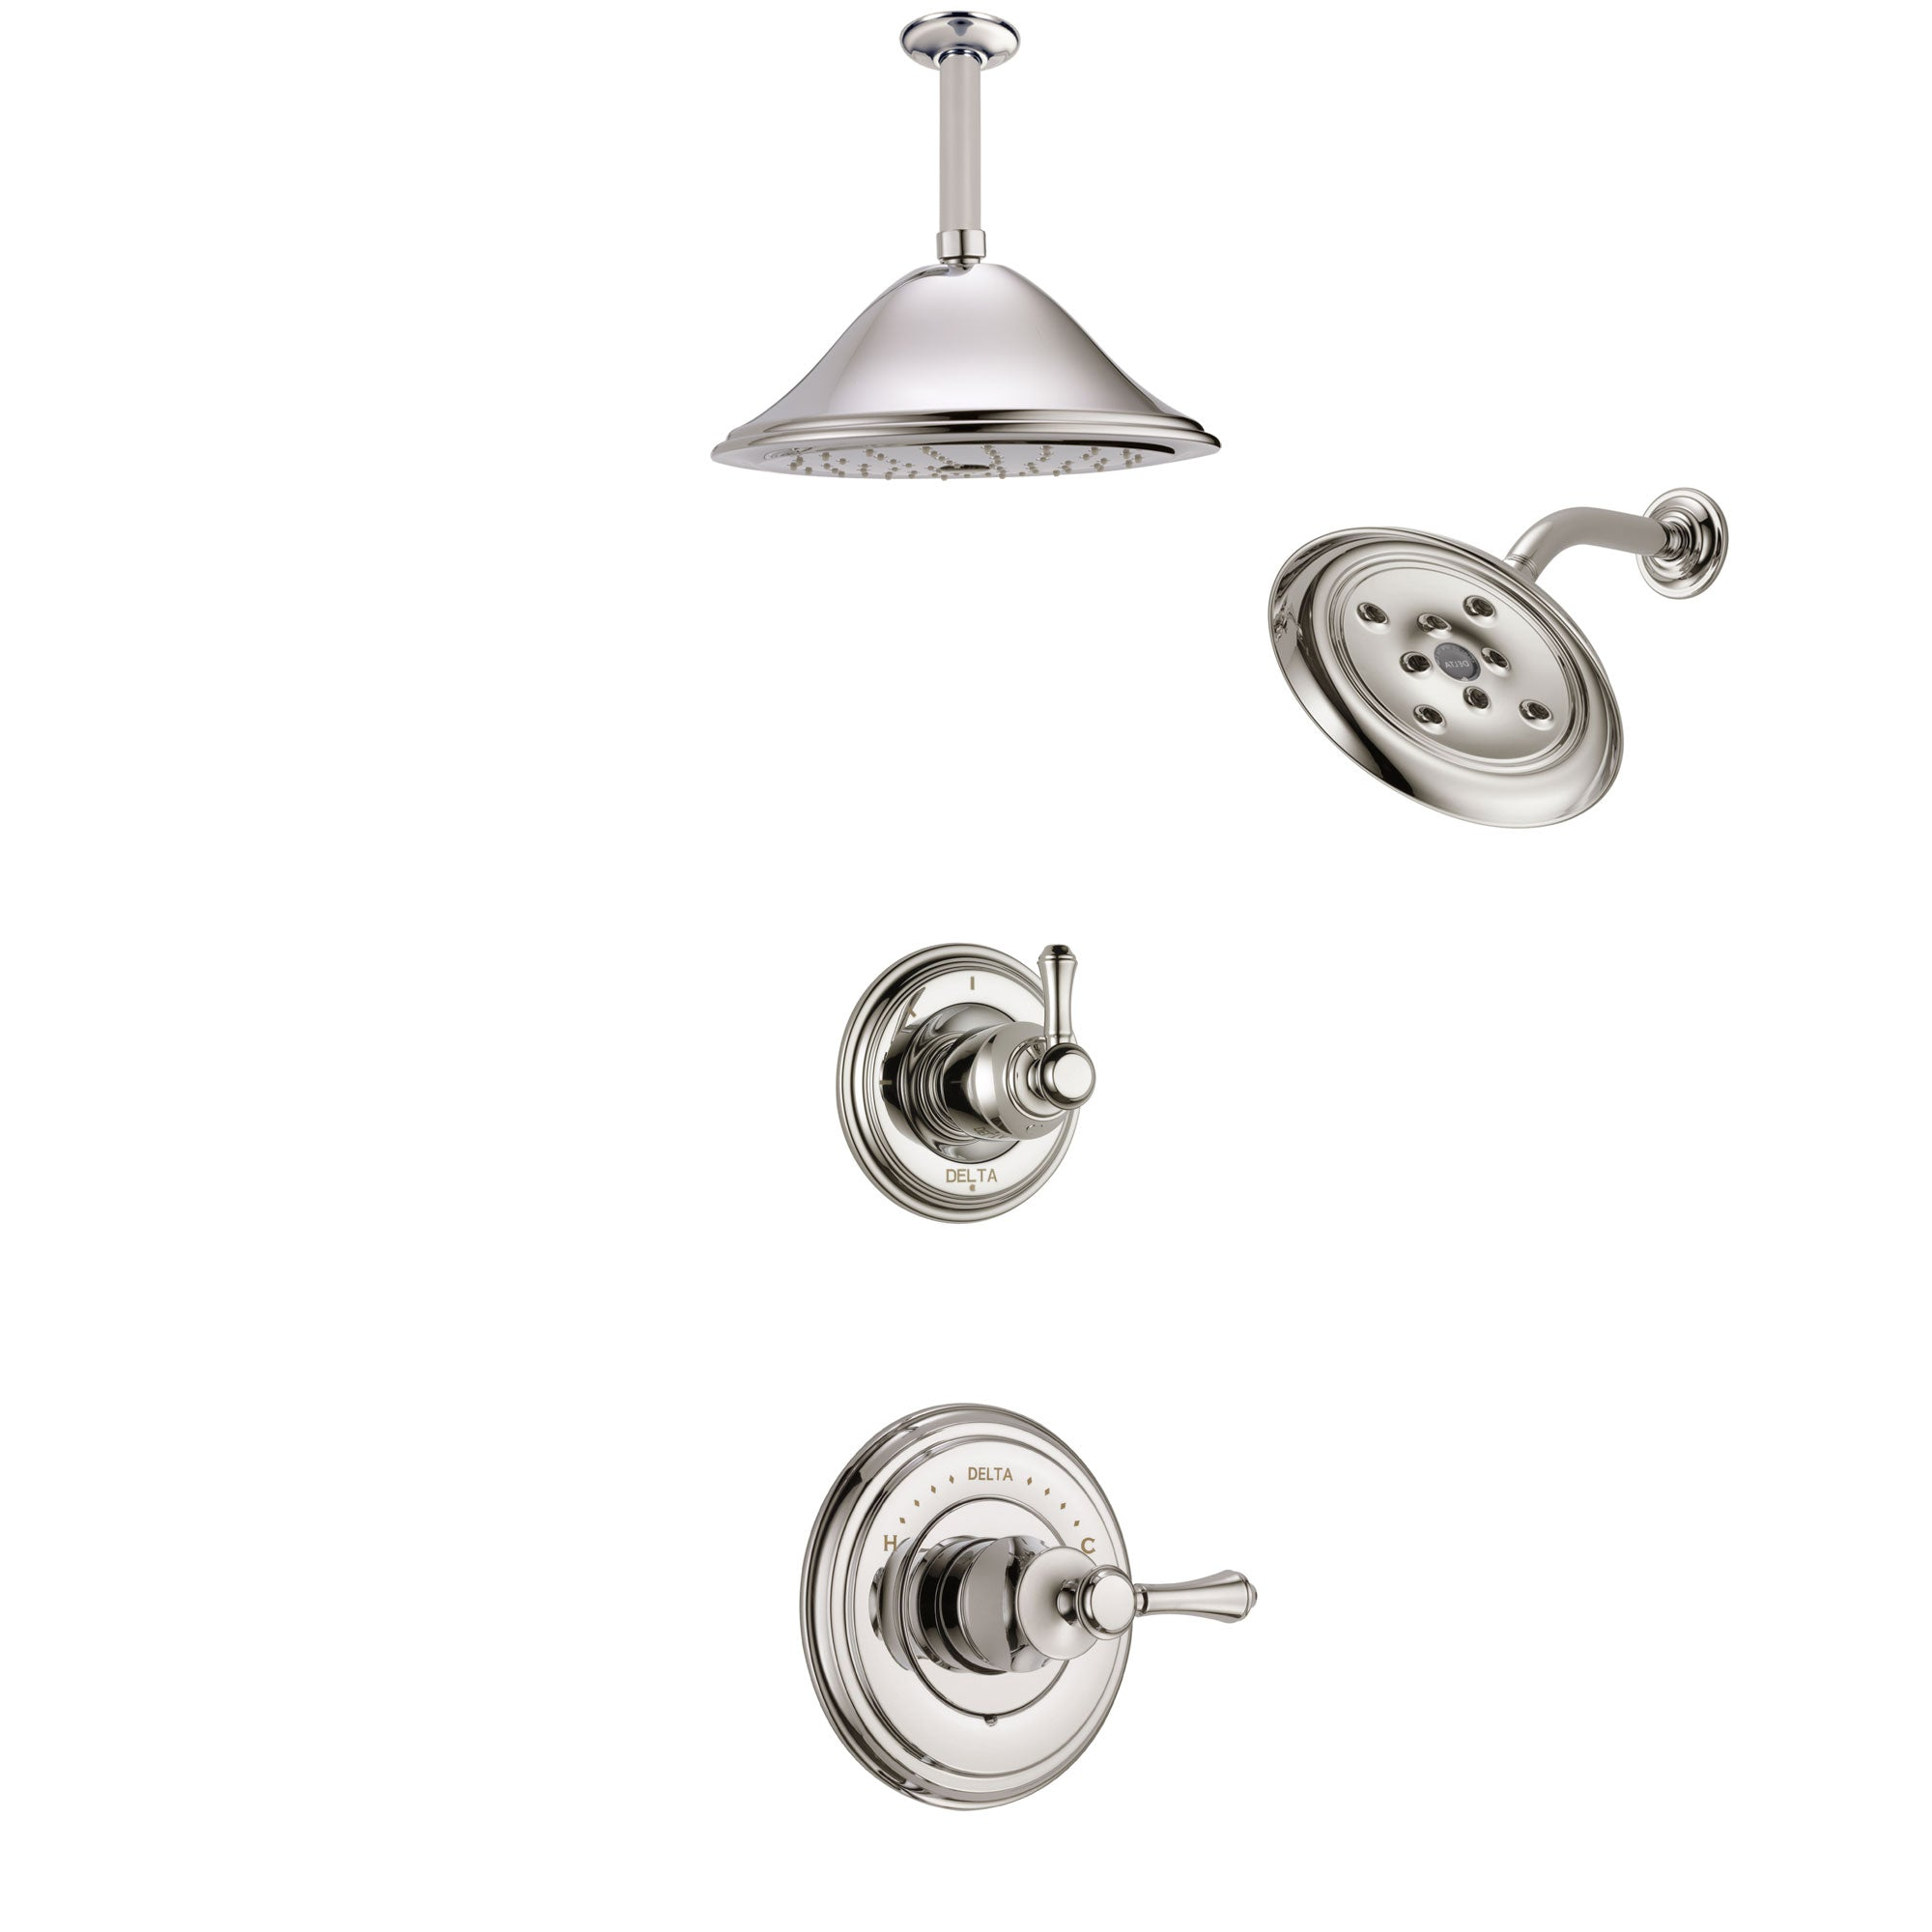 Delta Cassidy Polished Nickel Finish Shower System with Control Handle, 3-Setting Diverter, Showerhead, and Ceiling Mount Showerhead SS14972PN7